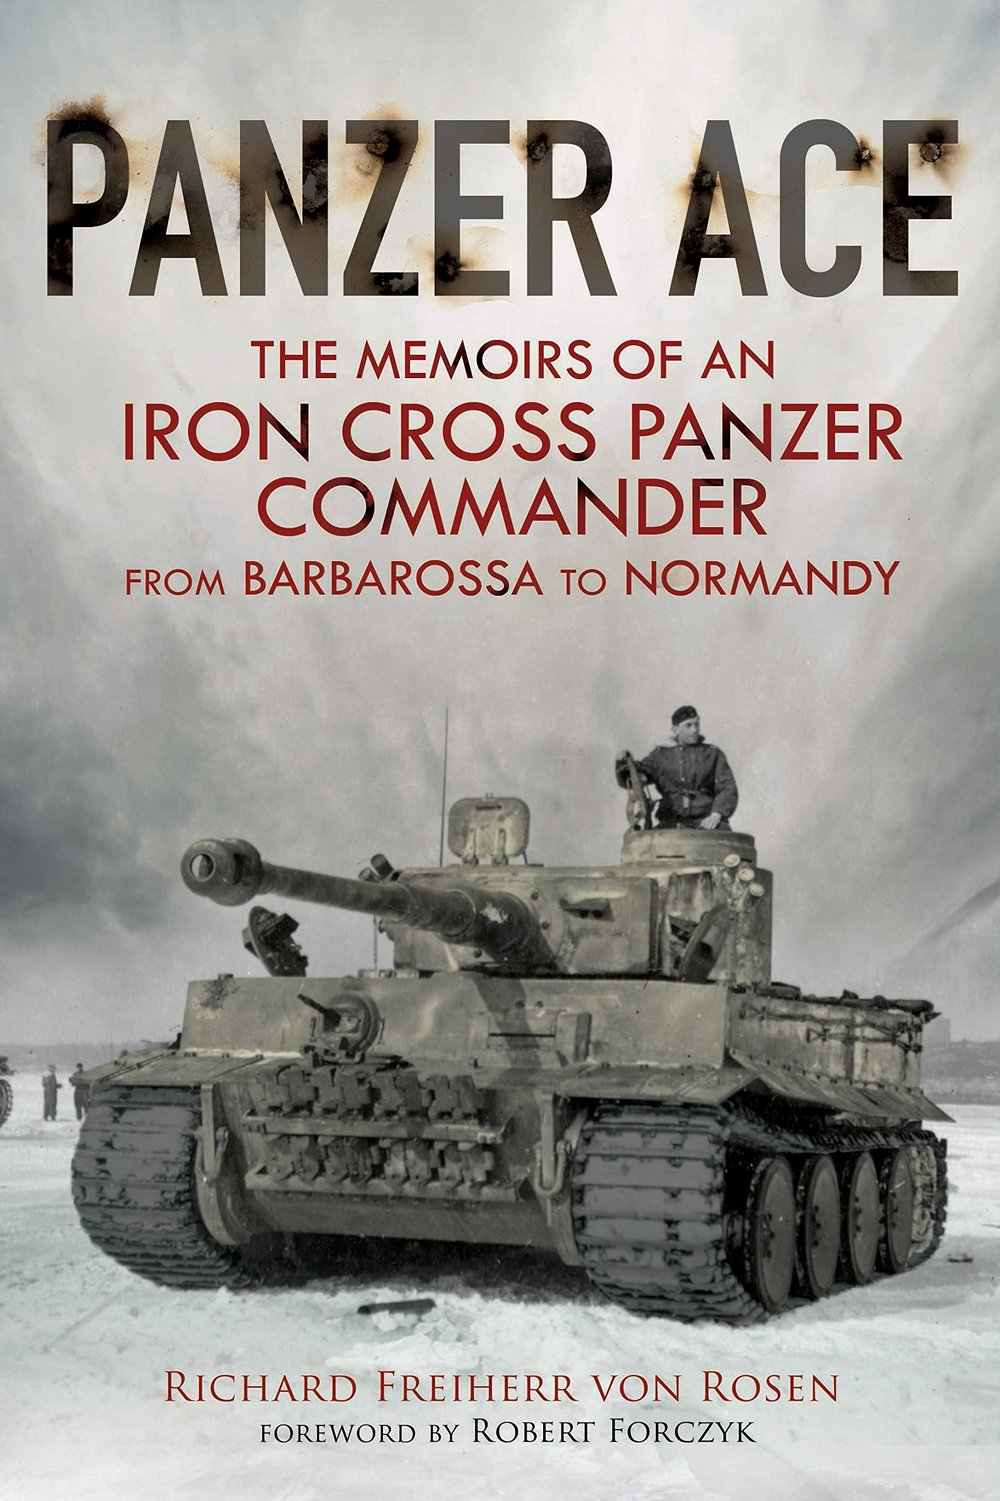 Panzer Ace The Memoirs of an Iron Cross Panzer Commander from Barbarossa to Normandy.jpg